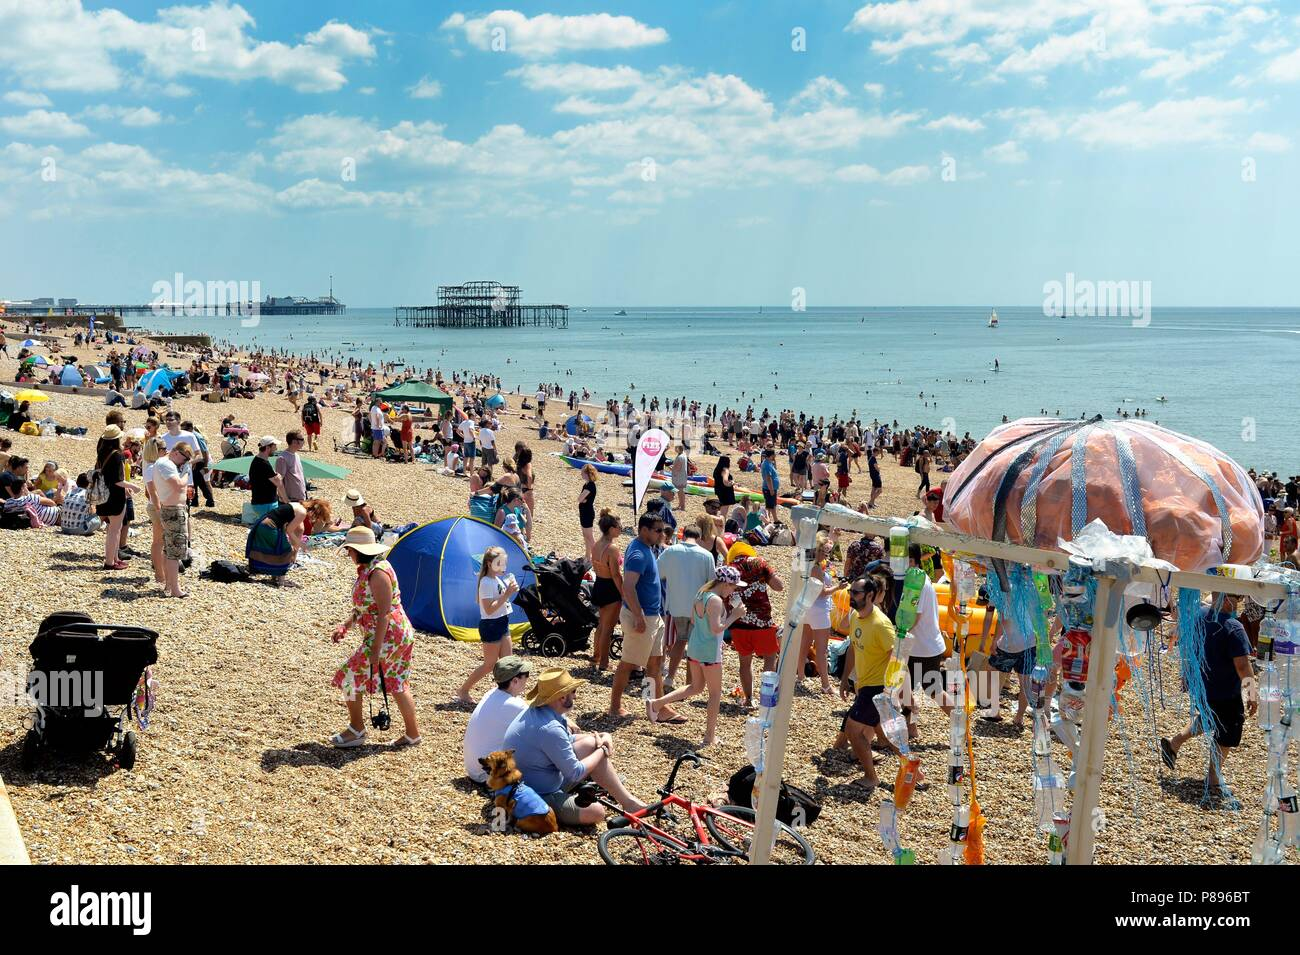 Crowded Brighton beach in the Summer heat - Stock Image